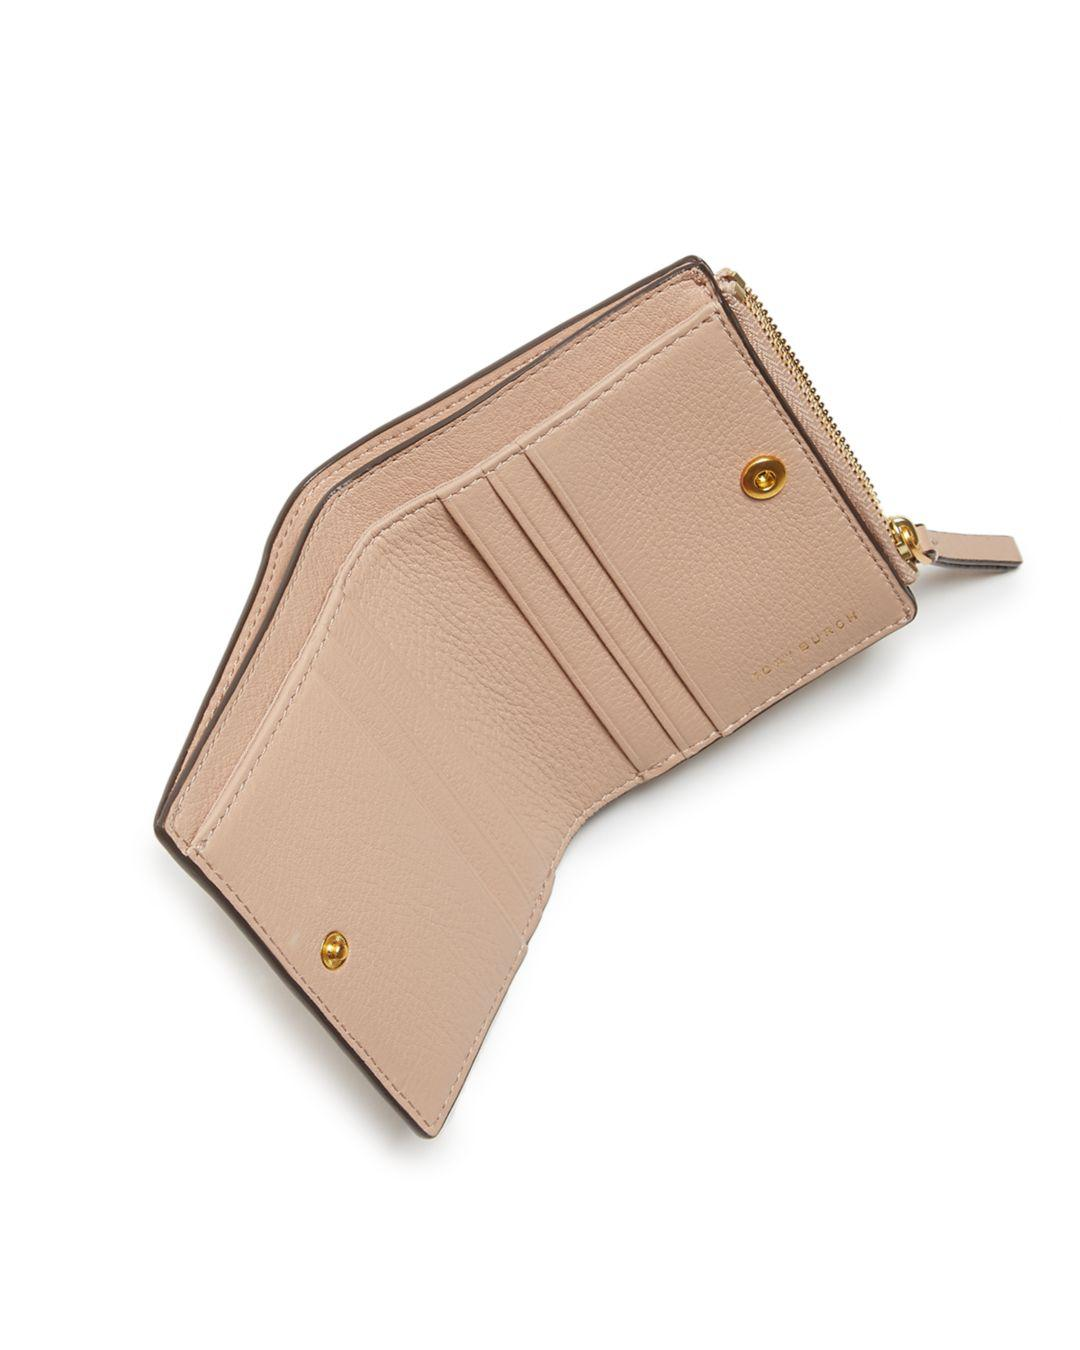 7548edeb47d Tory Burch - Multicolor Mcgraw Mini Foldable Leather Wallet - Lyst. View  fullscreen